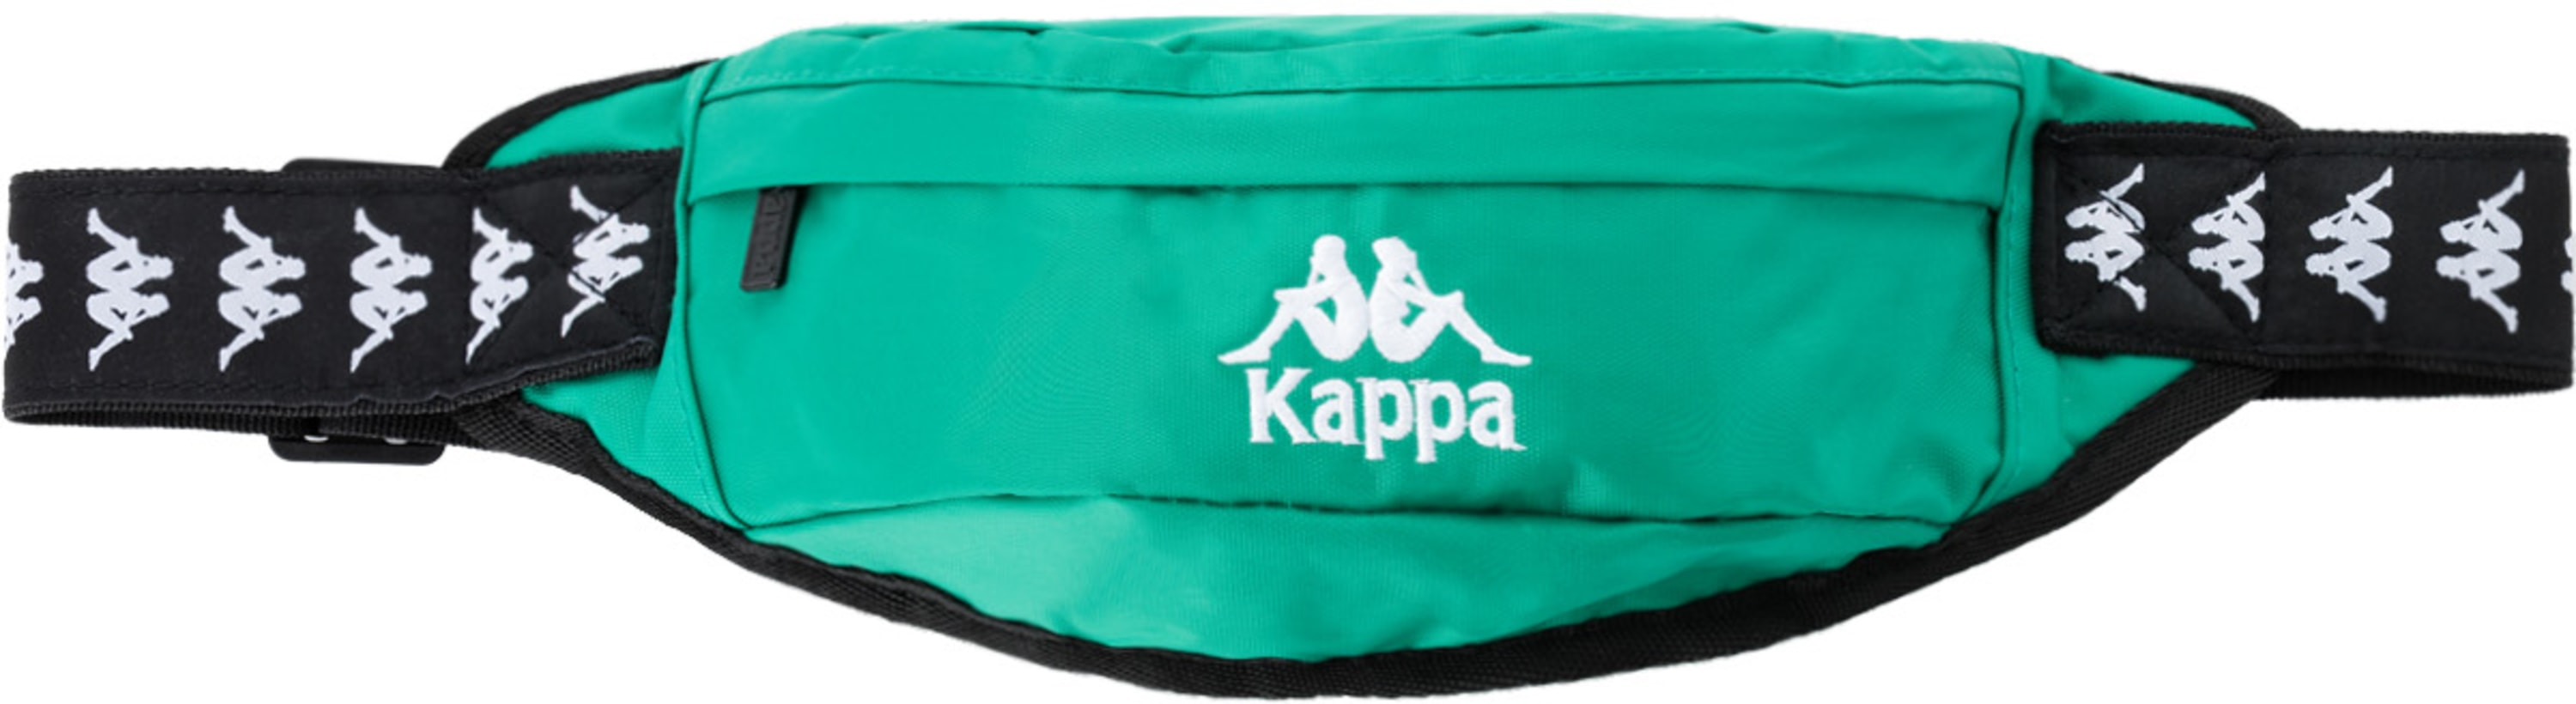 2e37eb6630 Kappa - 222 Banda Authentic Anais Waist Pouch - Green/Black/White